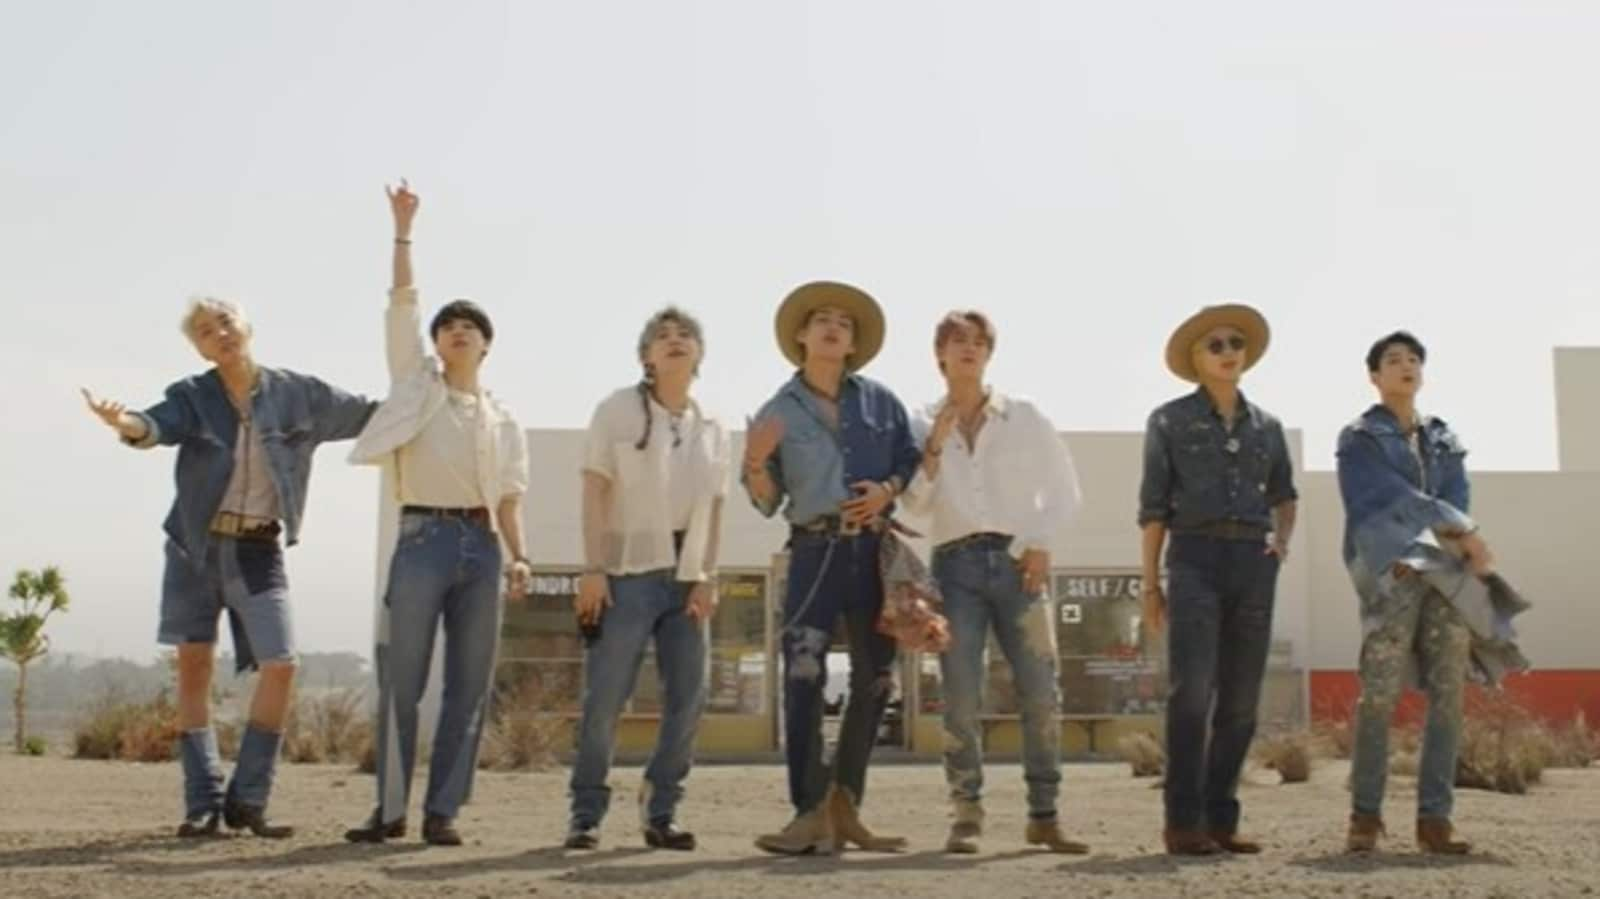 BTS Permission to Dance teaser has fans gushing over 'Cowboy Taehyung',  Butter rules Hot 100 for 6th week - Hindustan Times